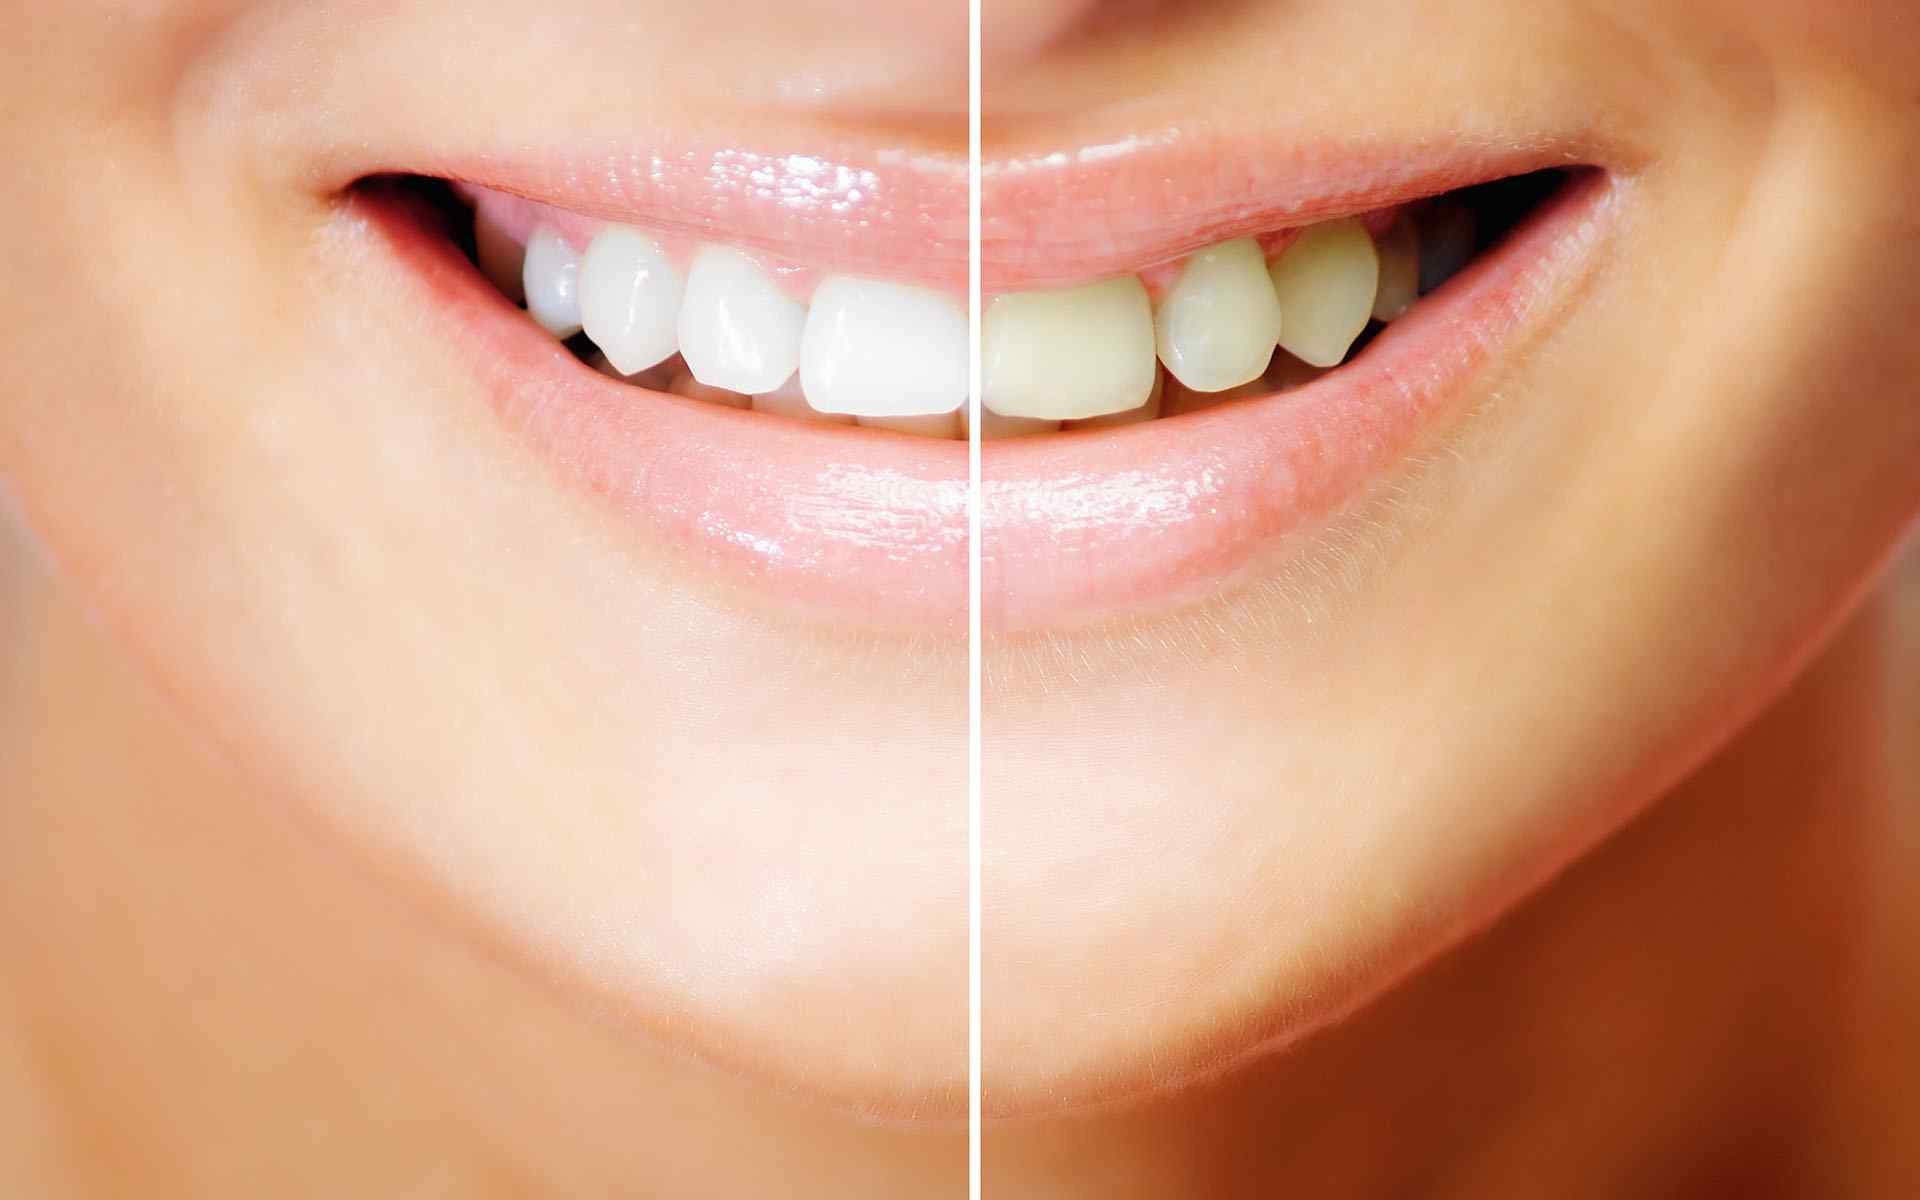 How whitening strips can damage your teeth